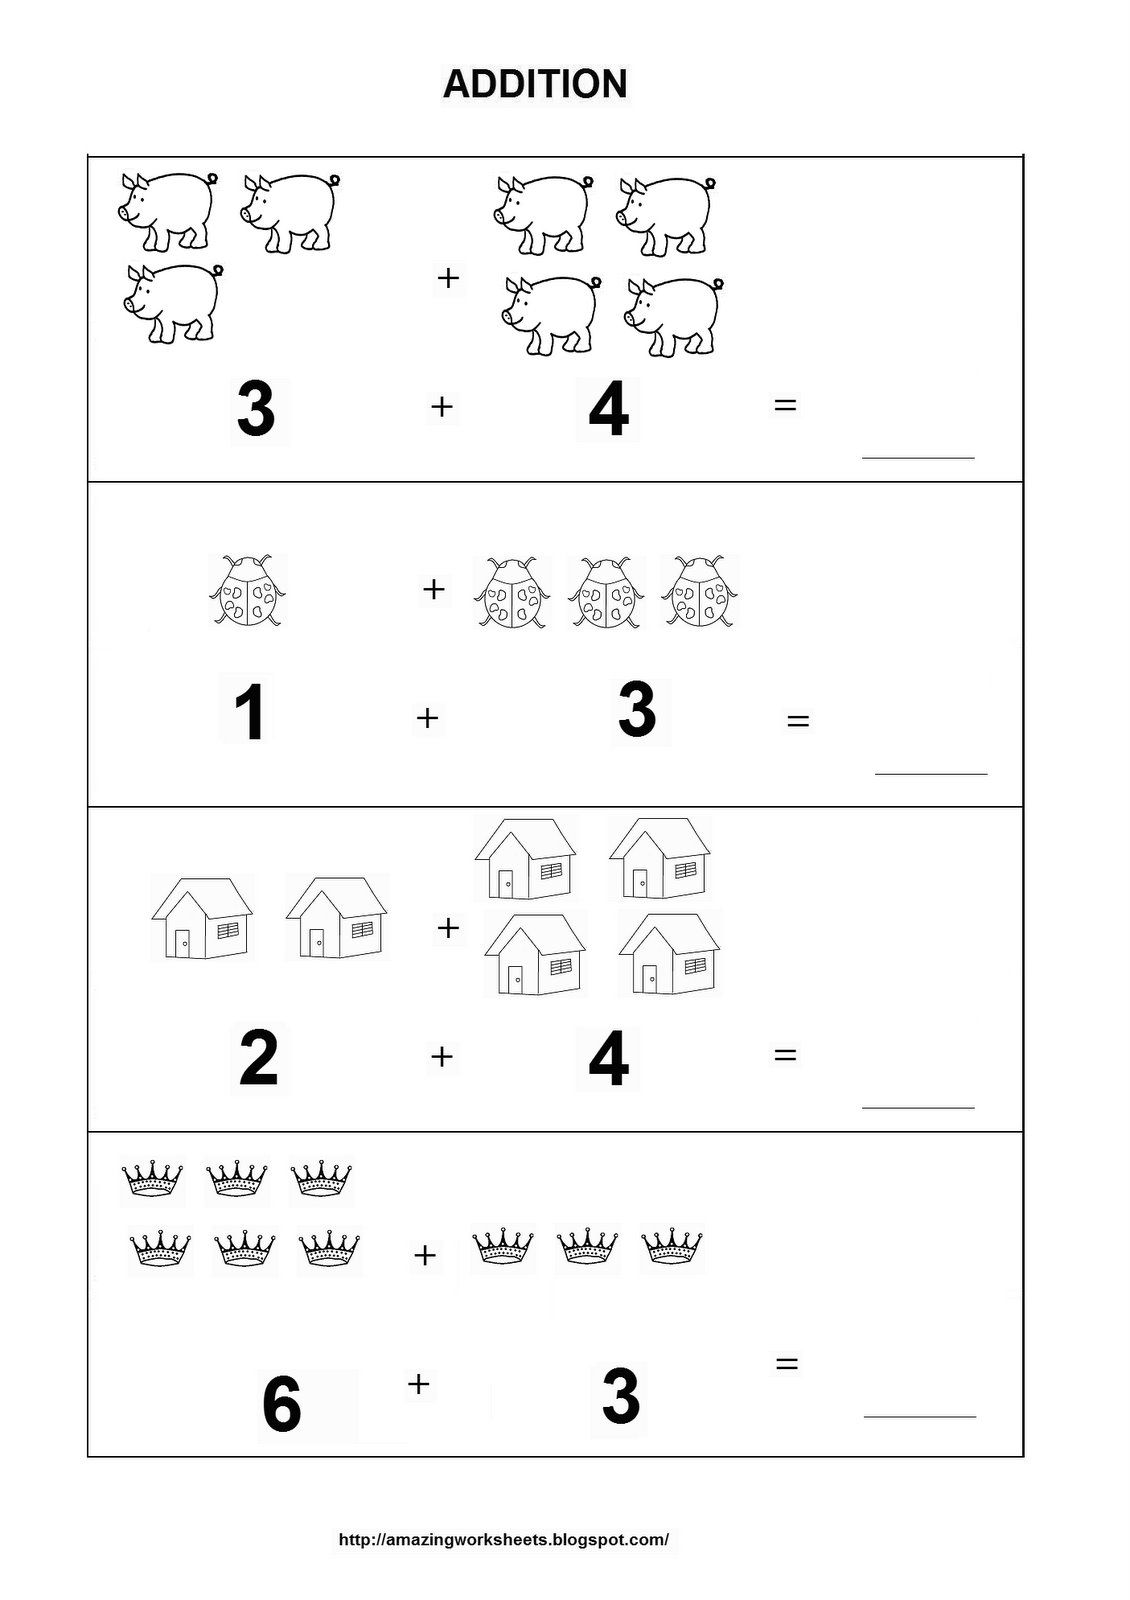 Printables Addition Worksheets For Kindergarten simple addition worksheets kindergarten scalien for kids scalien